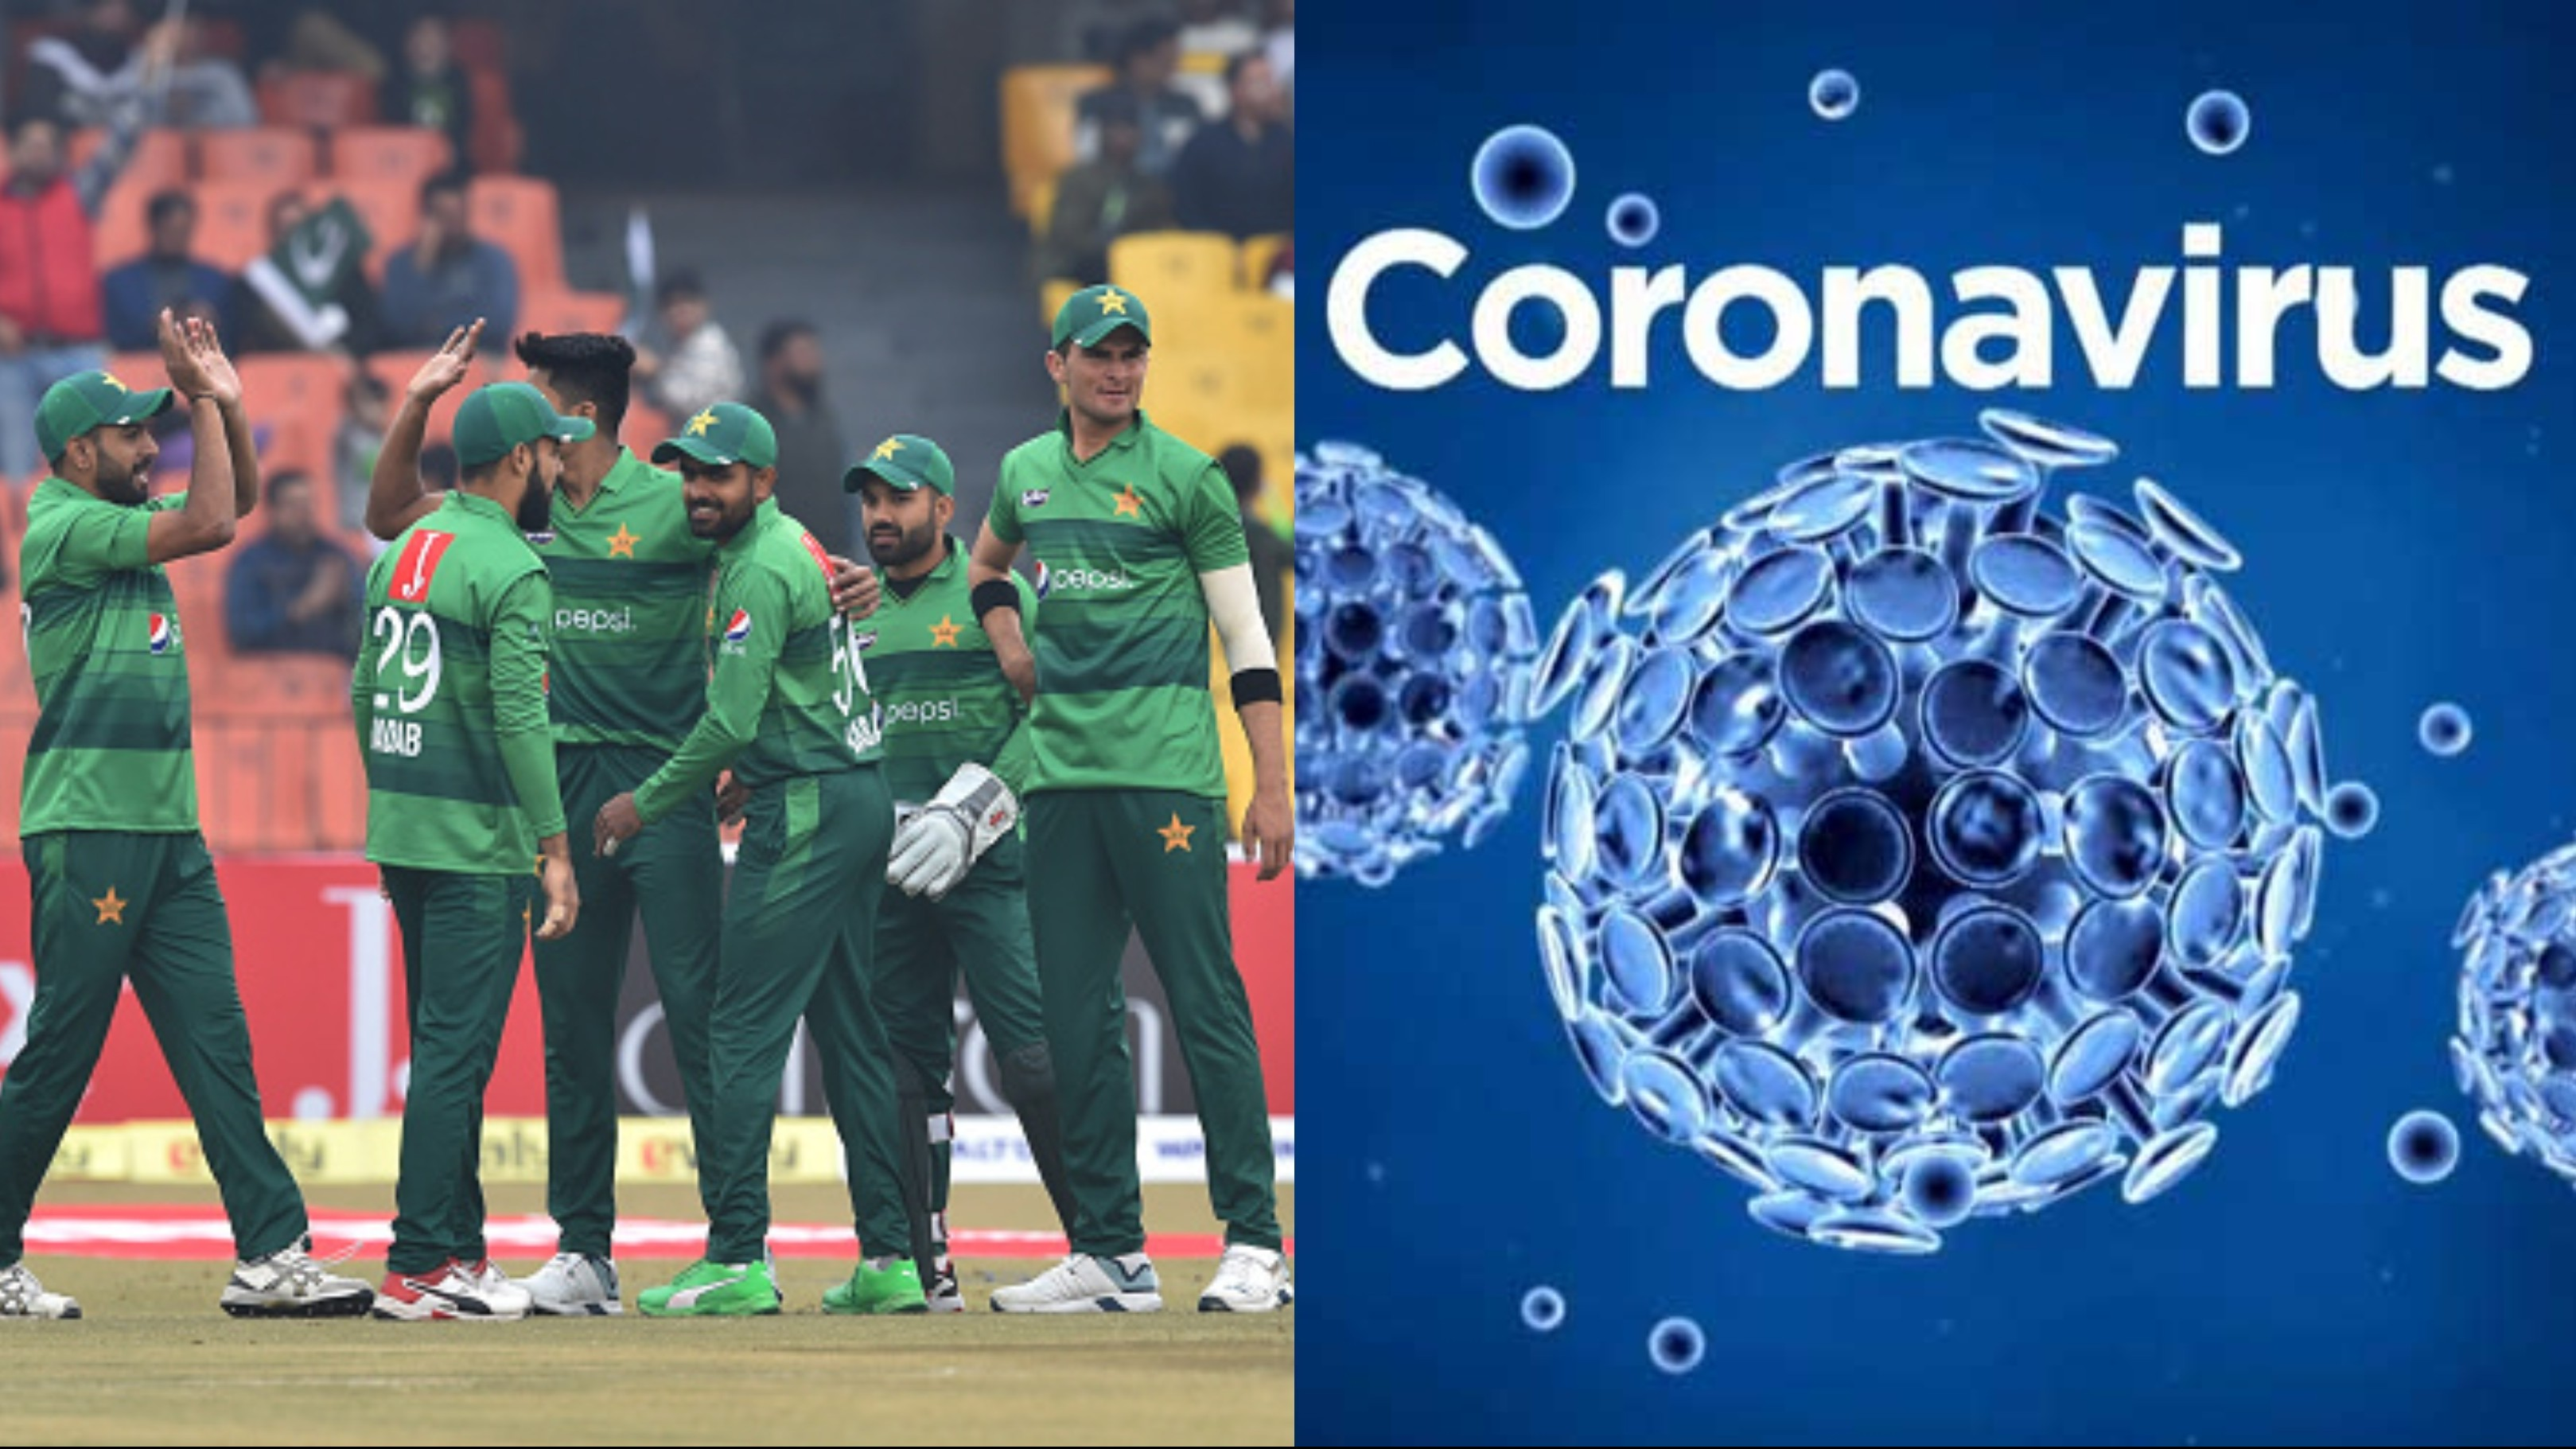 Pakistan cricketers to donate Rs 5 mn to Govt's emergency fund to fight Coronavirus pandemic